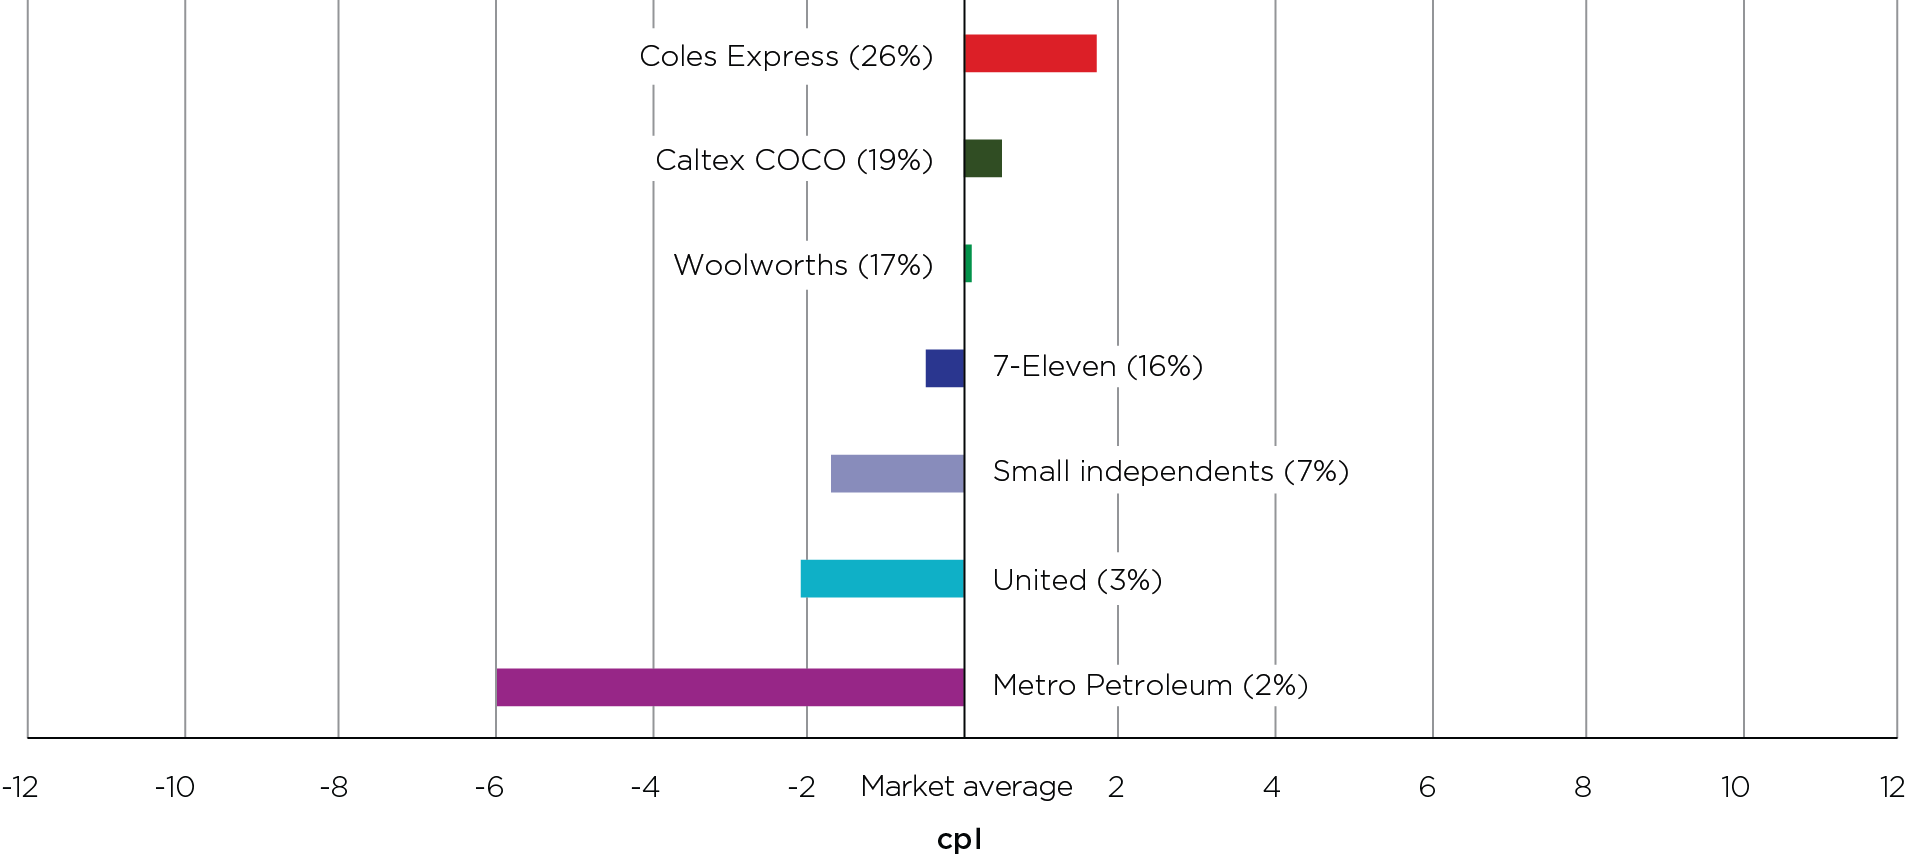 In 2020, Canberra motorists could have saved 7.7 cents per litre by buying petrol at the lowest-priced retailer, which was Metro Petroleum, rather than the highest-priced retailer, which was Coles Express.